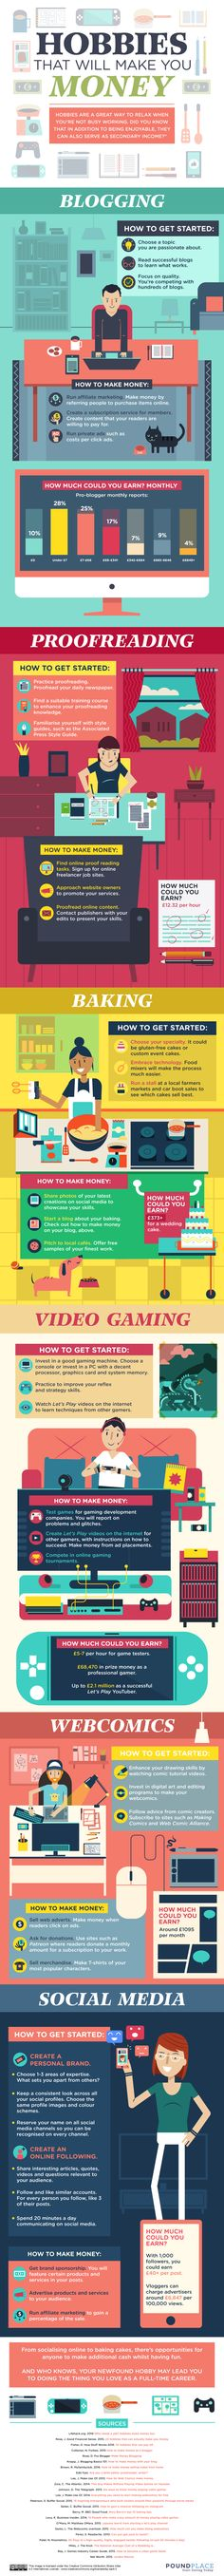 6 Hobbies That Can Actually Make You Money - infographic